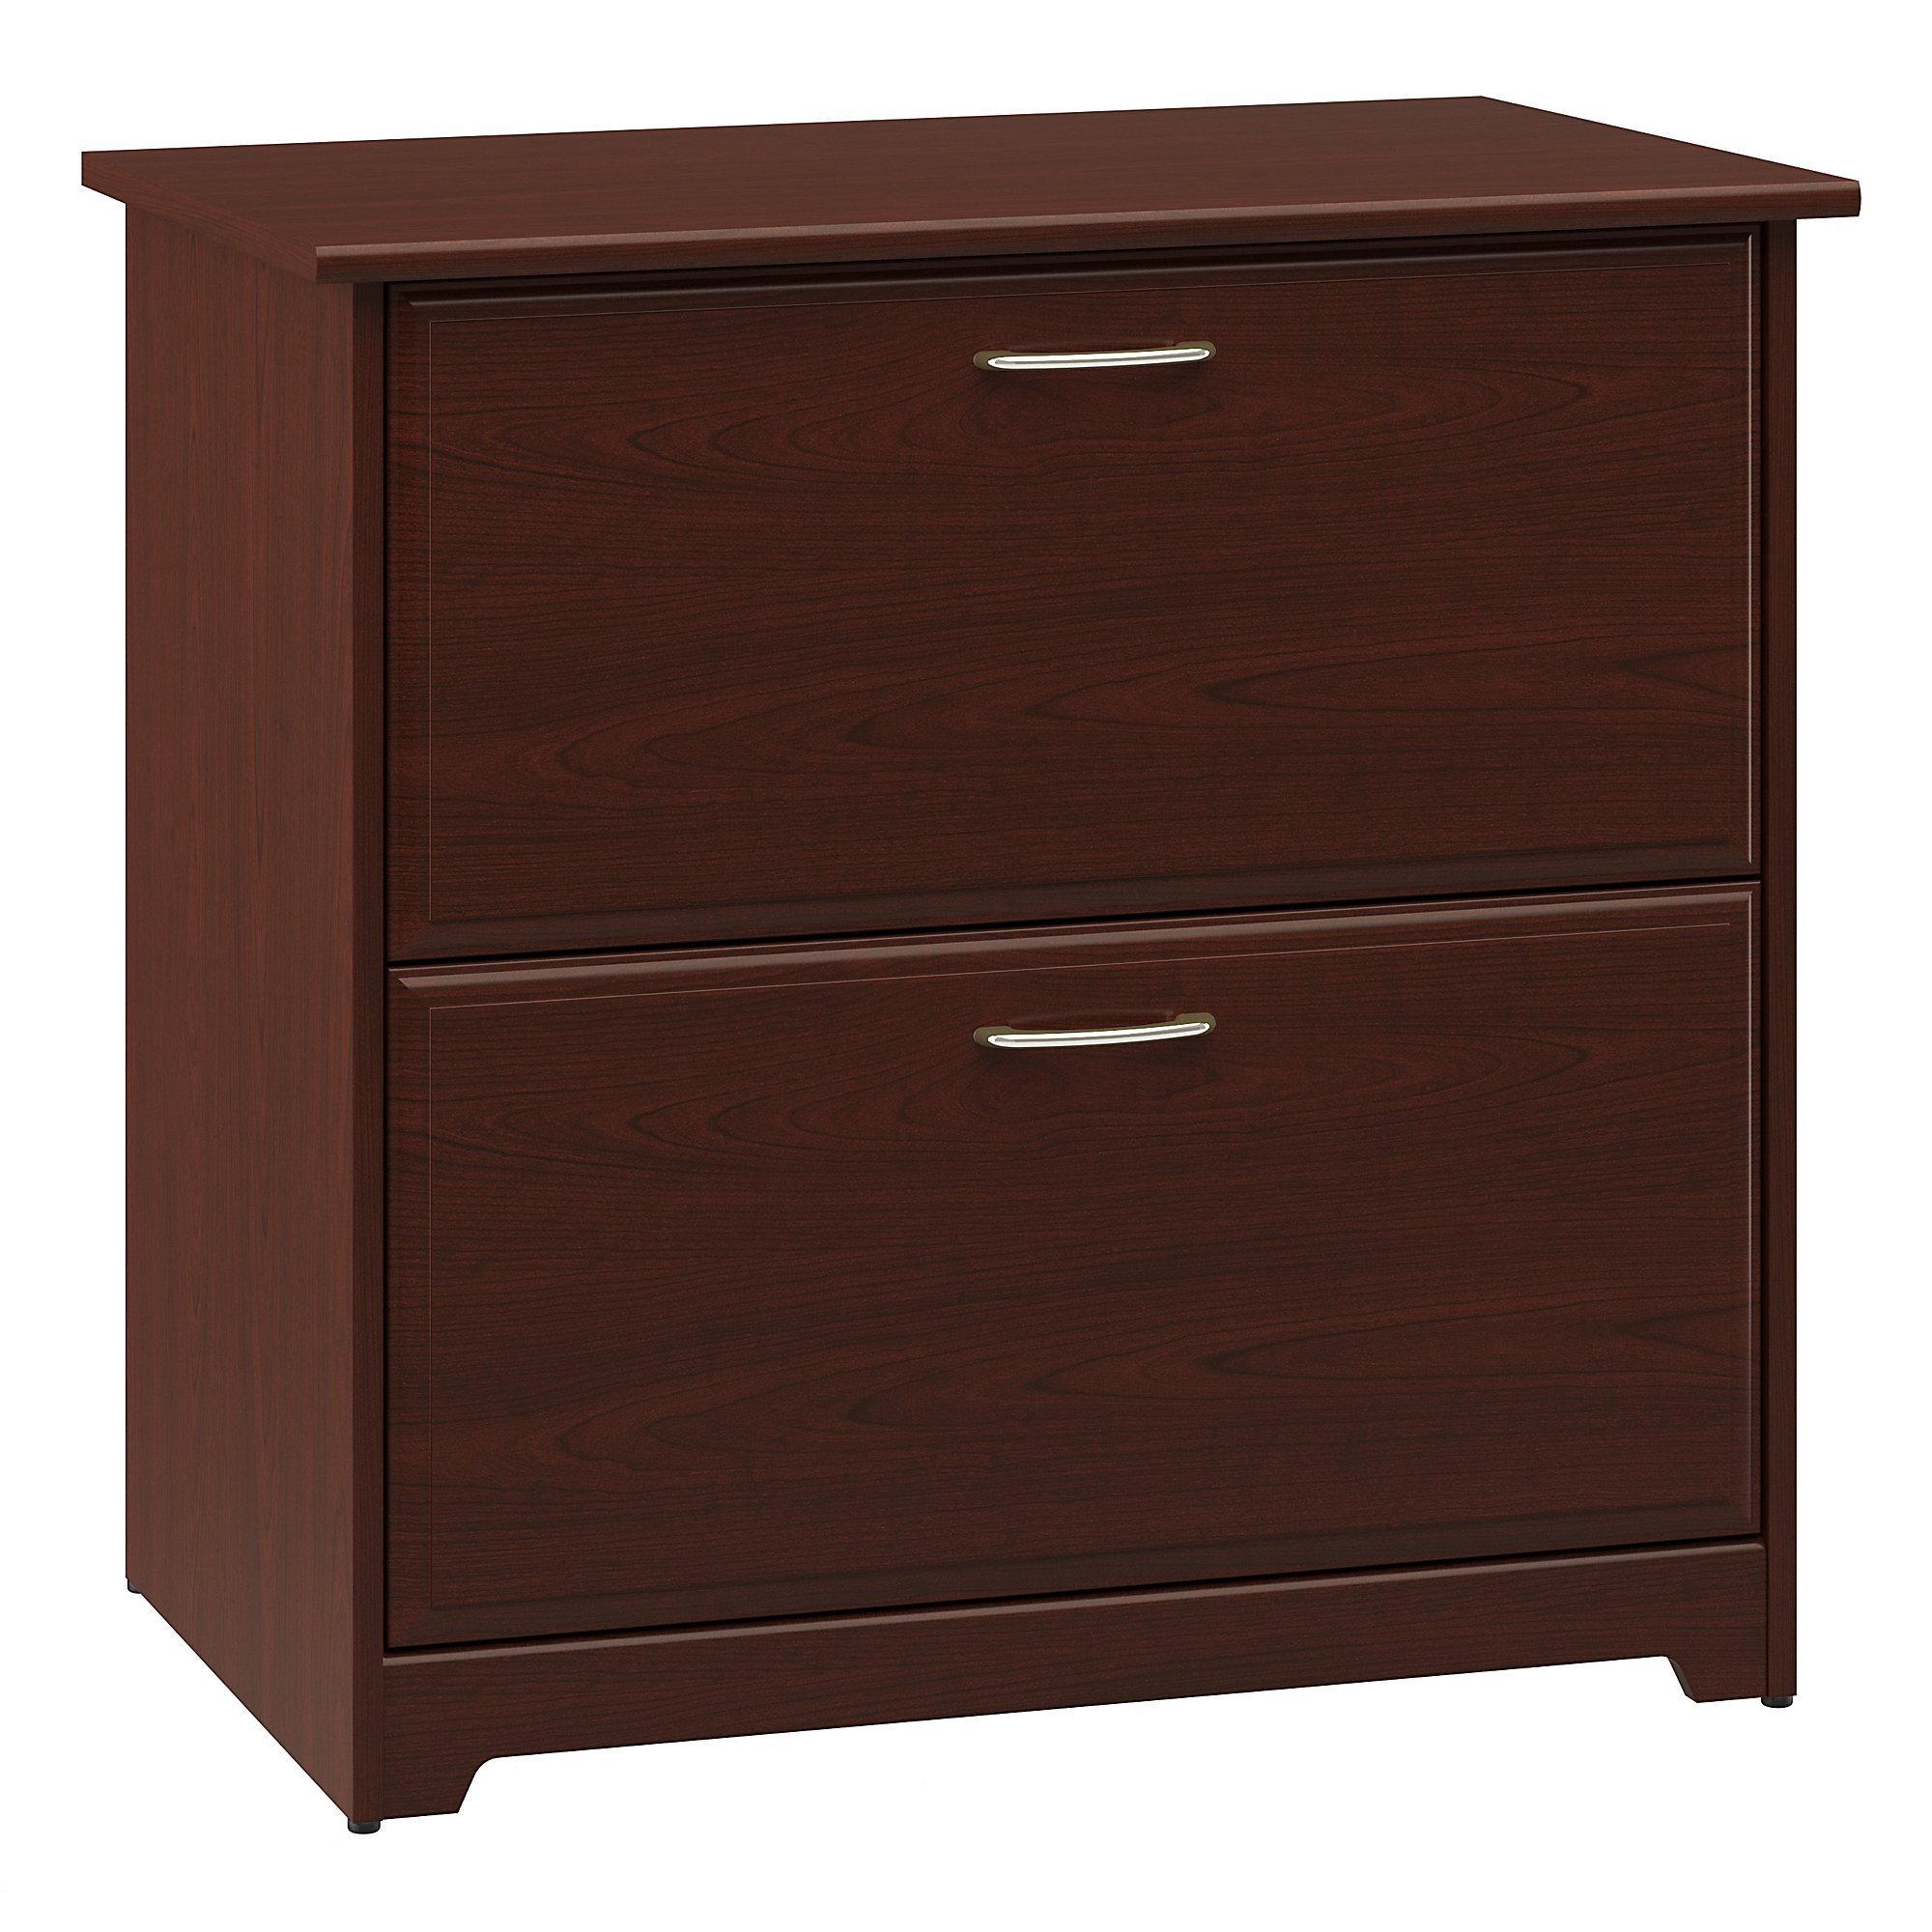 Bush Furniture Cabot Lateral File Cabinet in Harvest Cherry